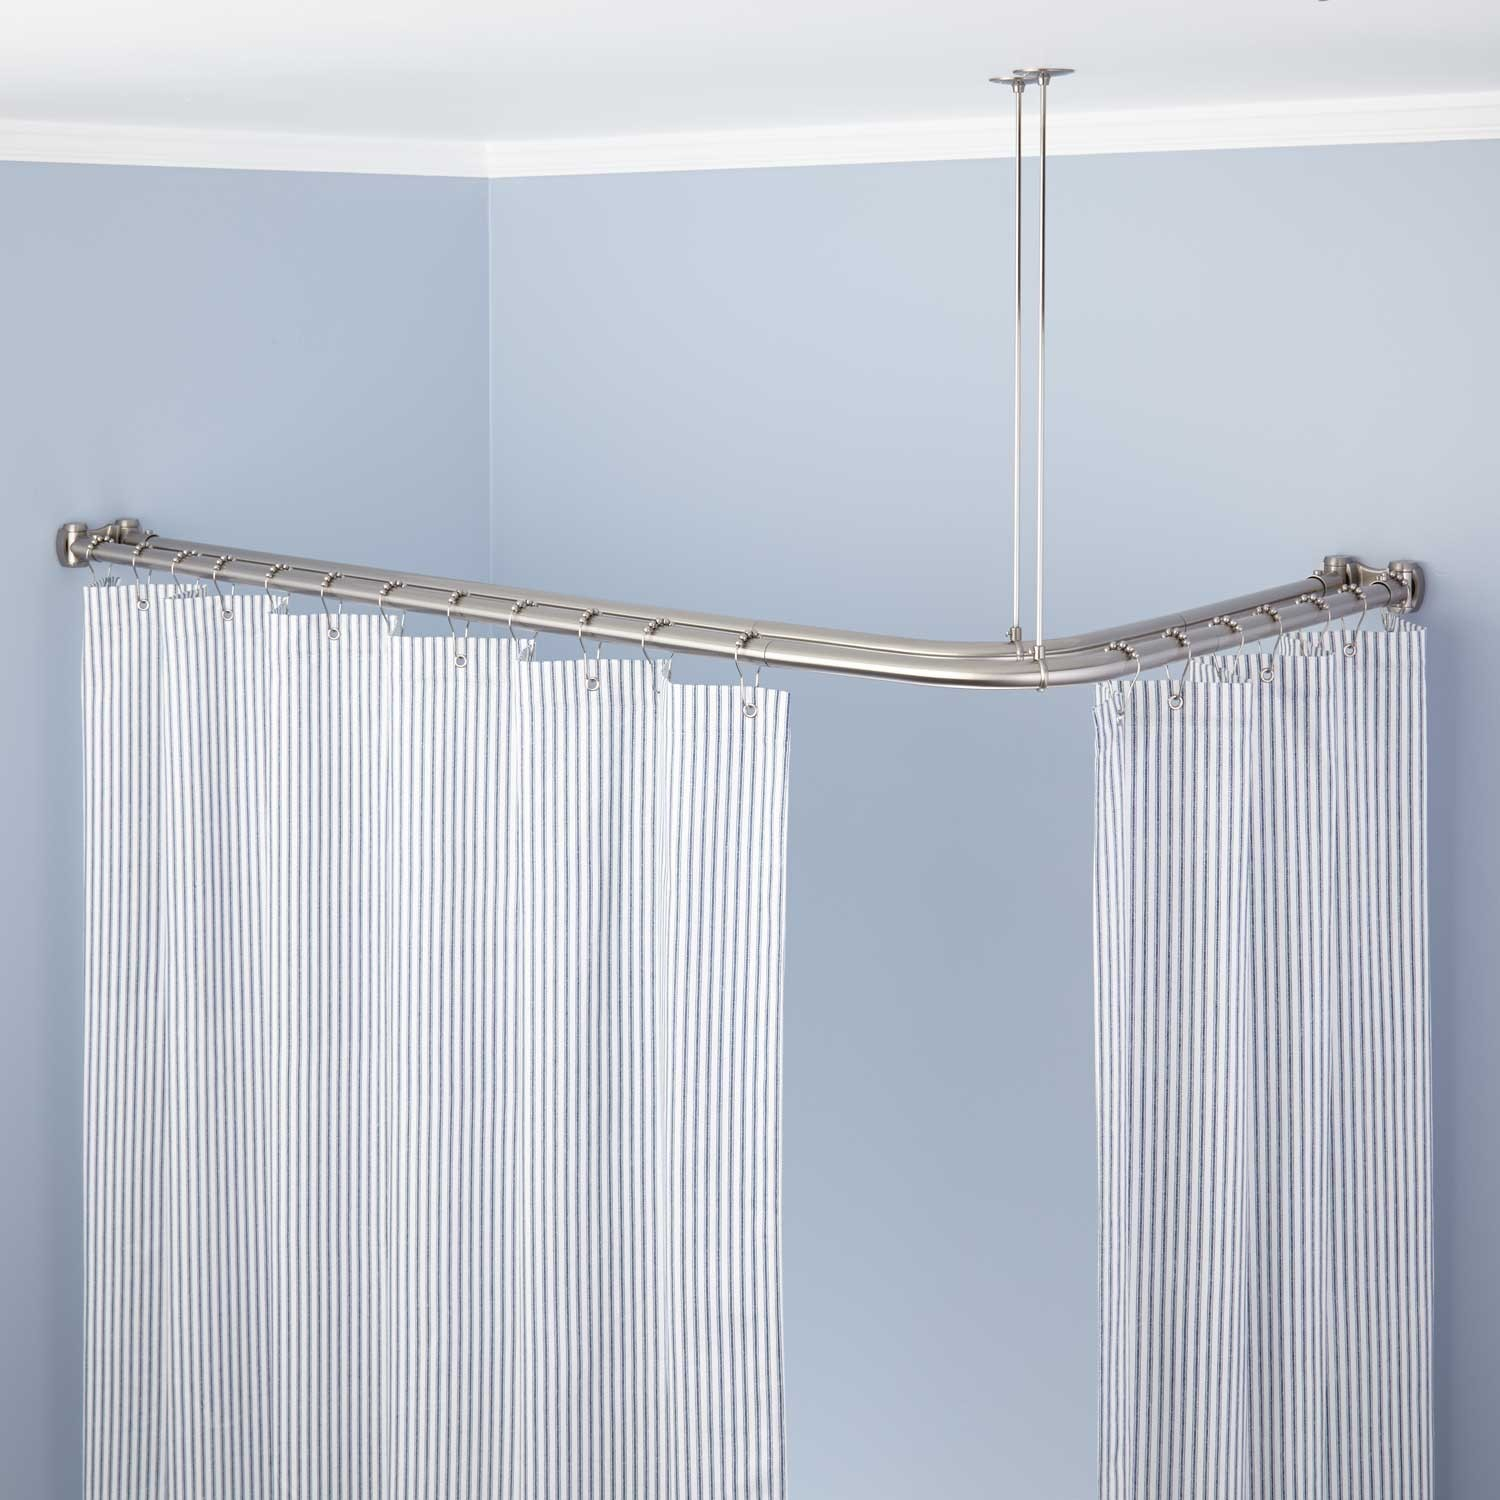 97+ Shower Curtain Bar Images - 22 Best Double Curved Shower Rods ...